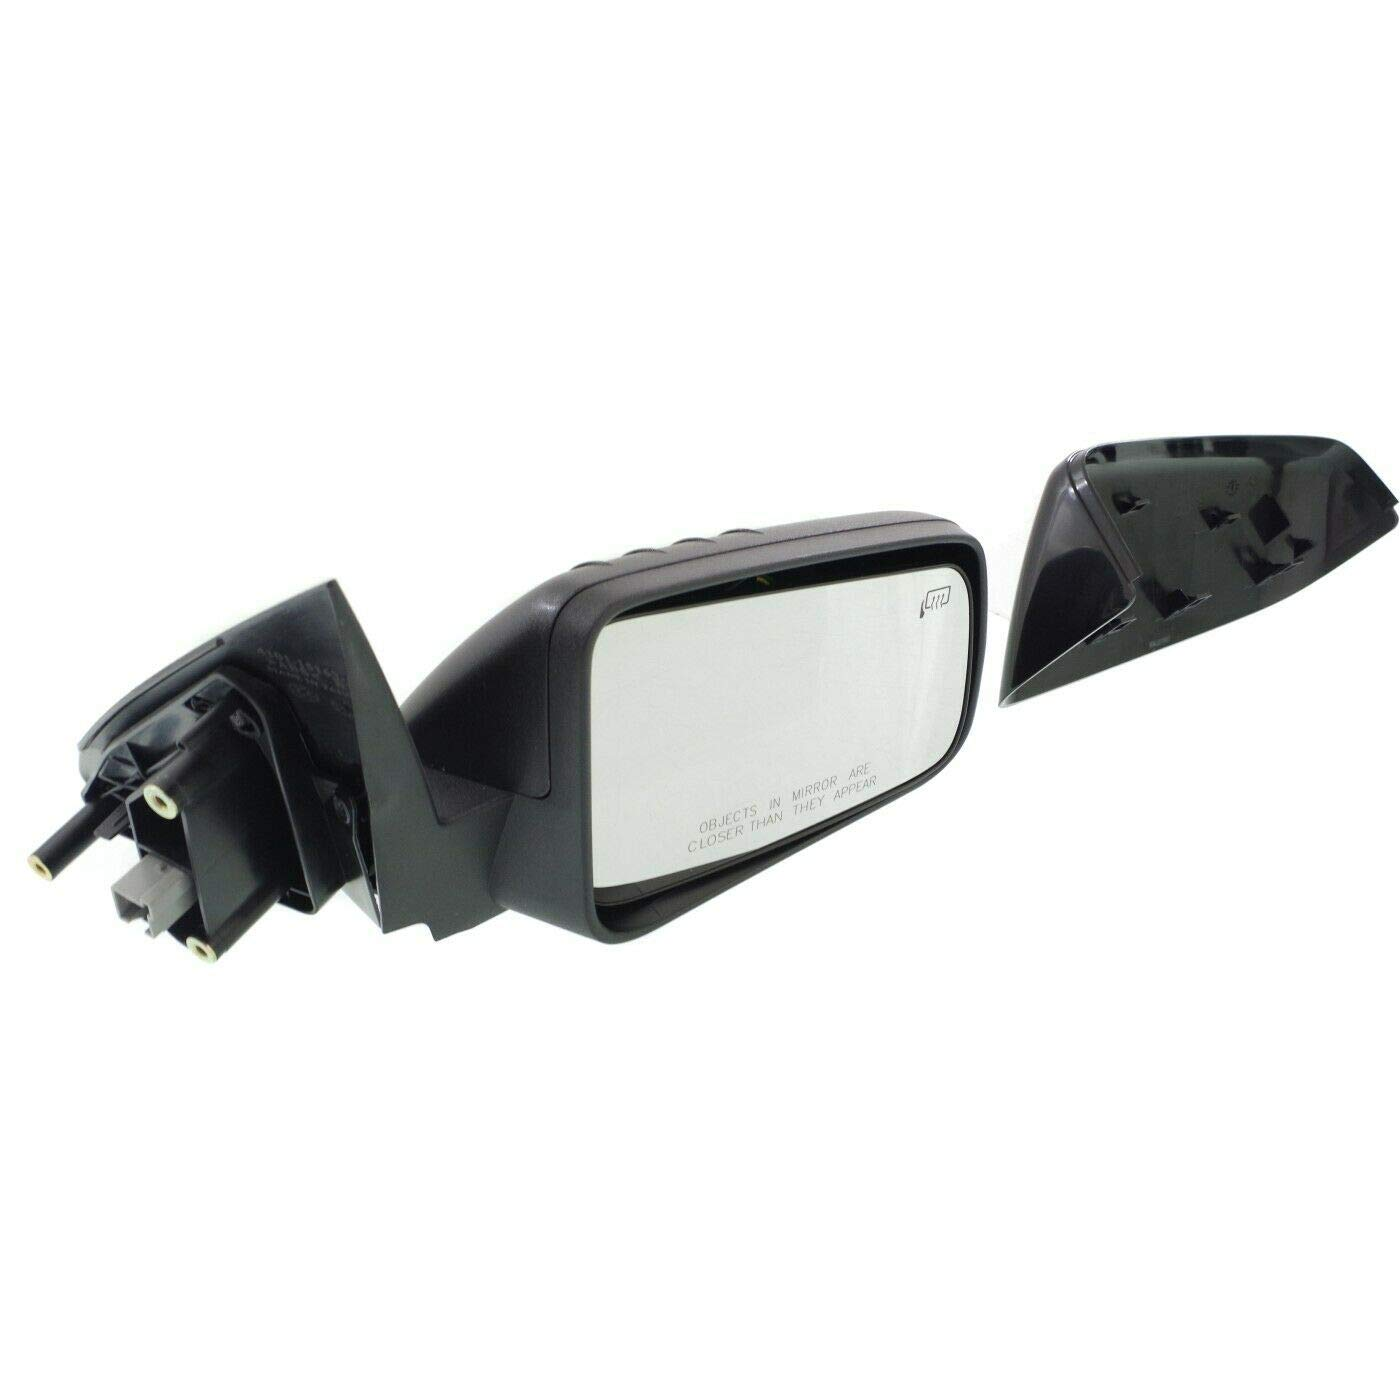 FO1321317 FO1321331 Make Auto Parts Manufacturing Passenger Right Side Power Operated Heated Door Mirror With 2 Caps For Ford Focus 2008 2009 2010 2011